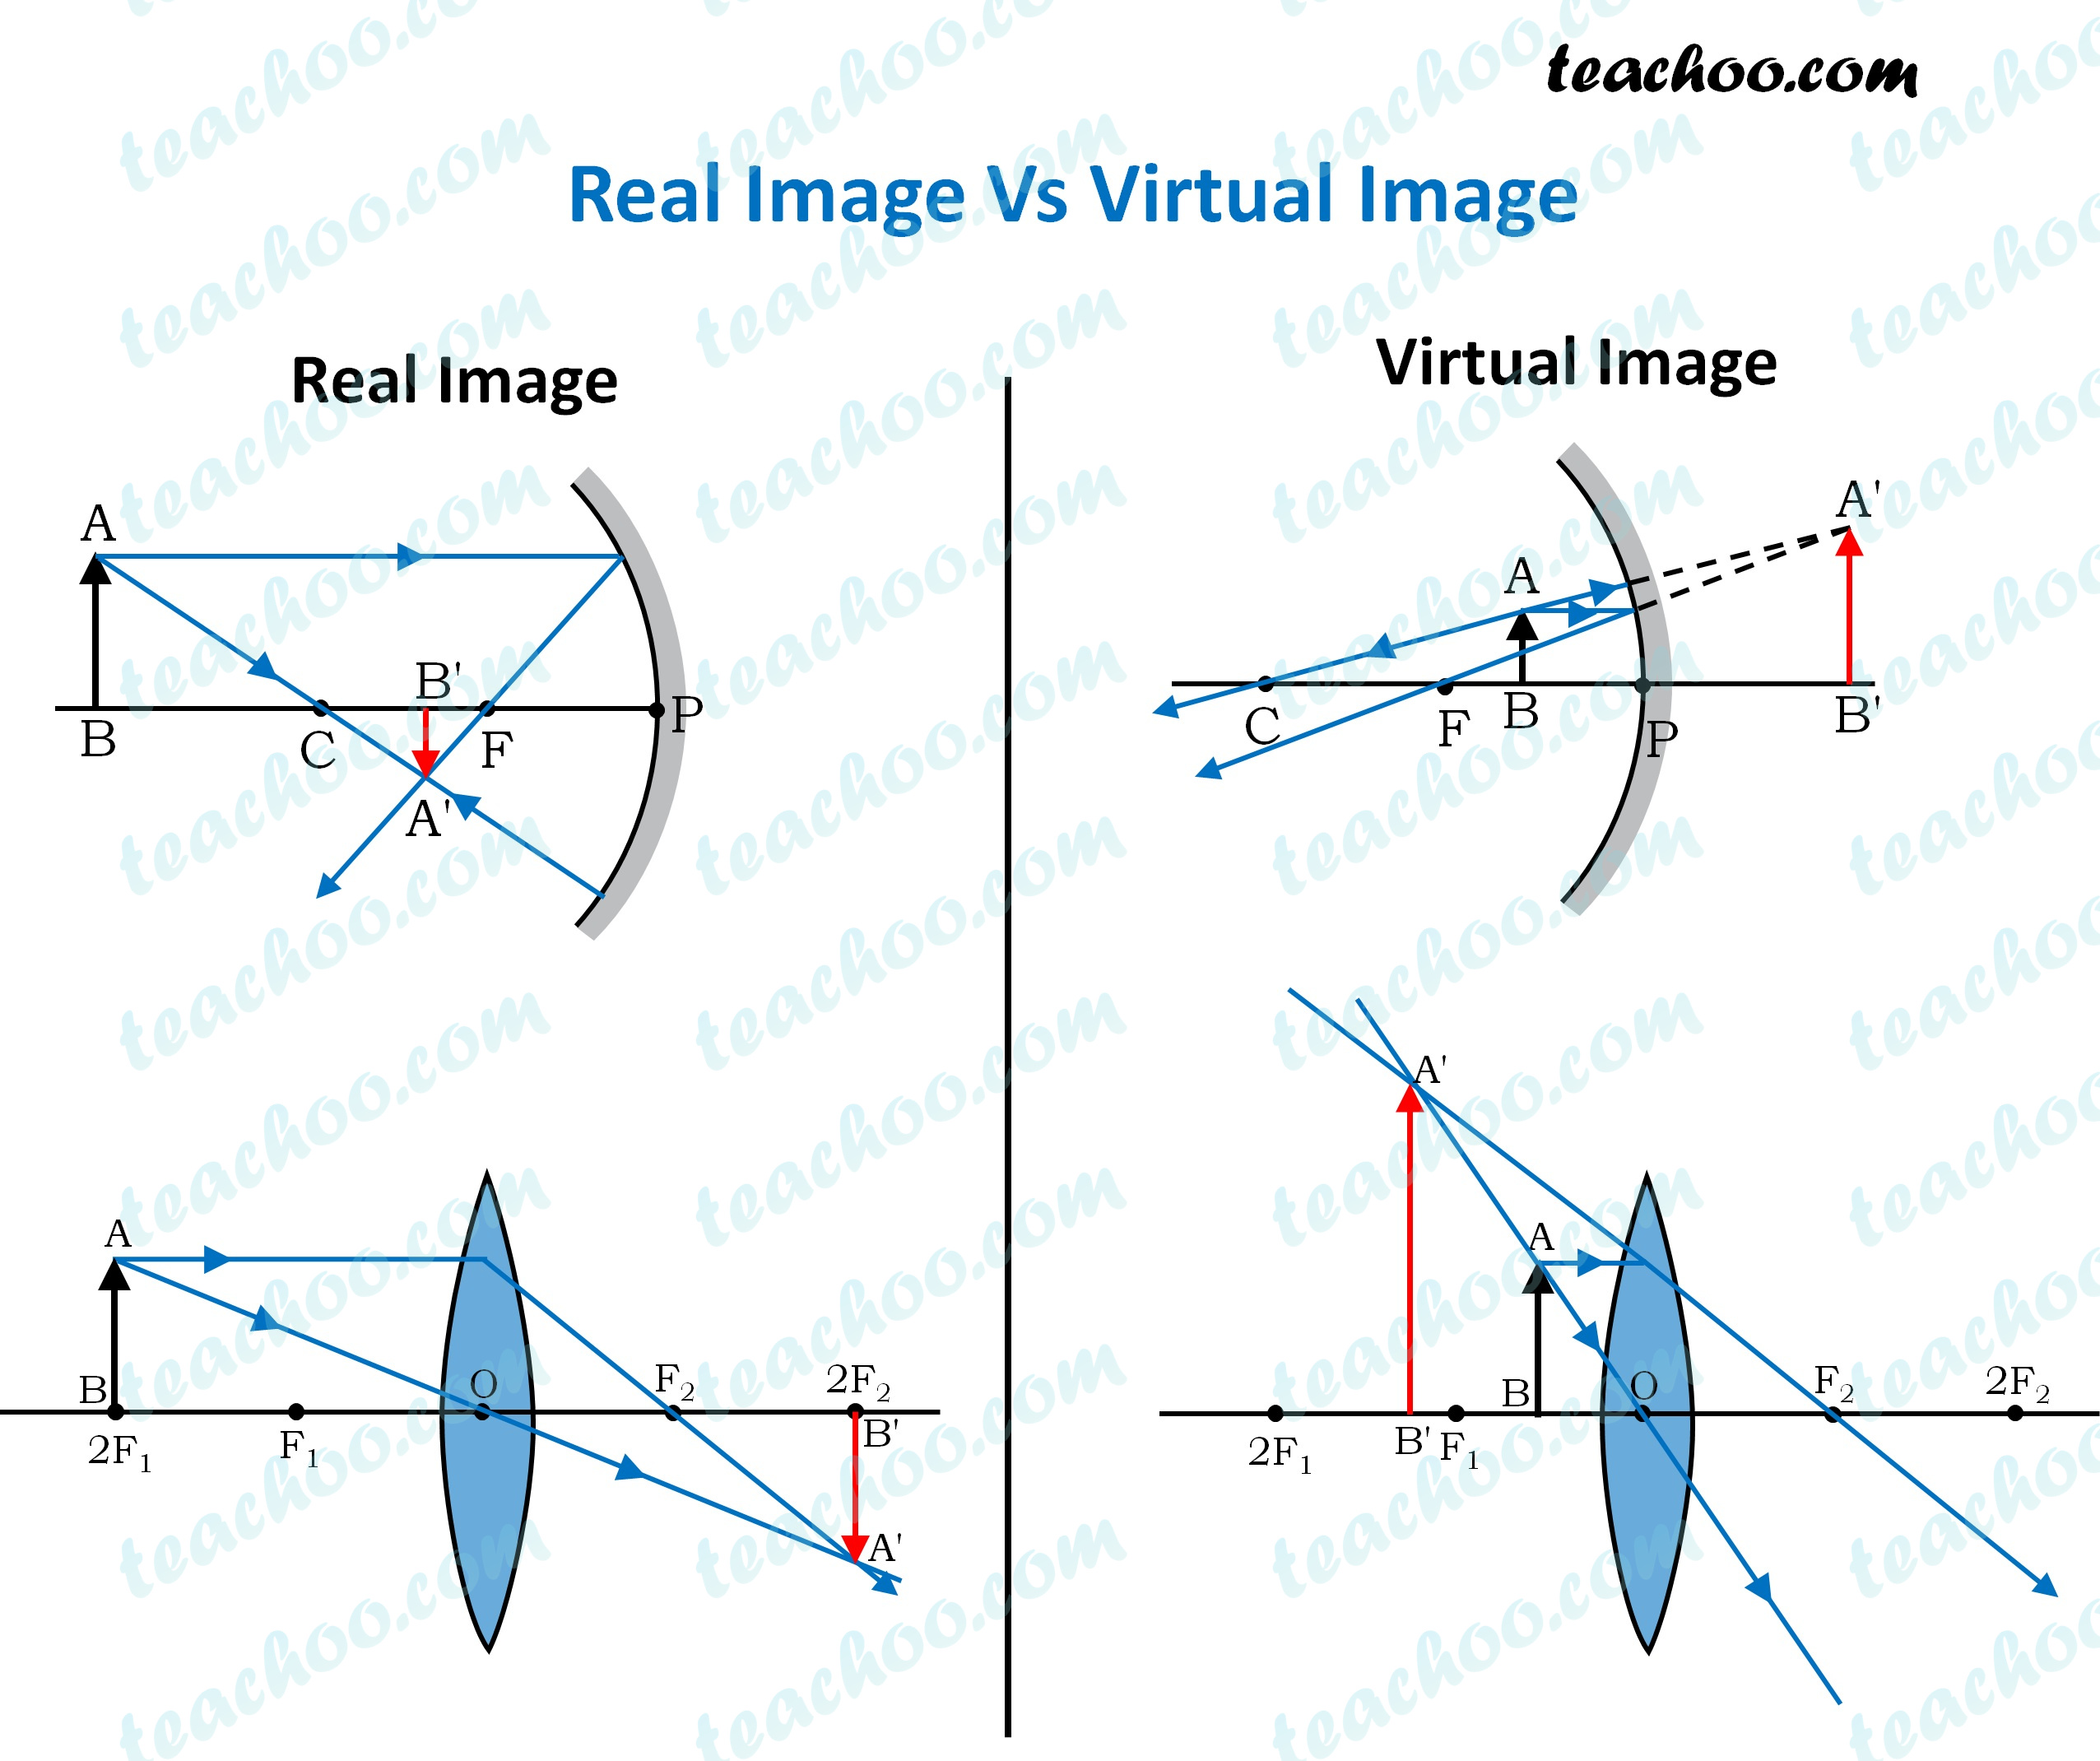 real-image-vs-virtual-image---teachoo.jpg